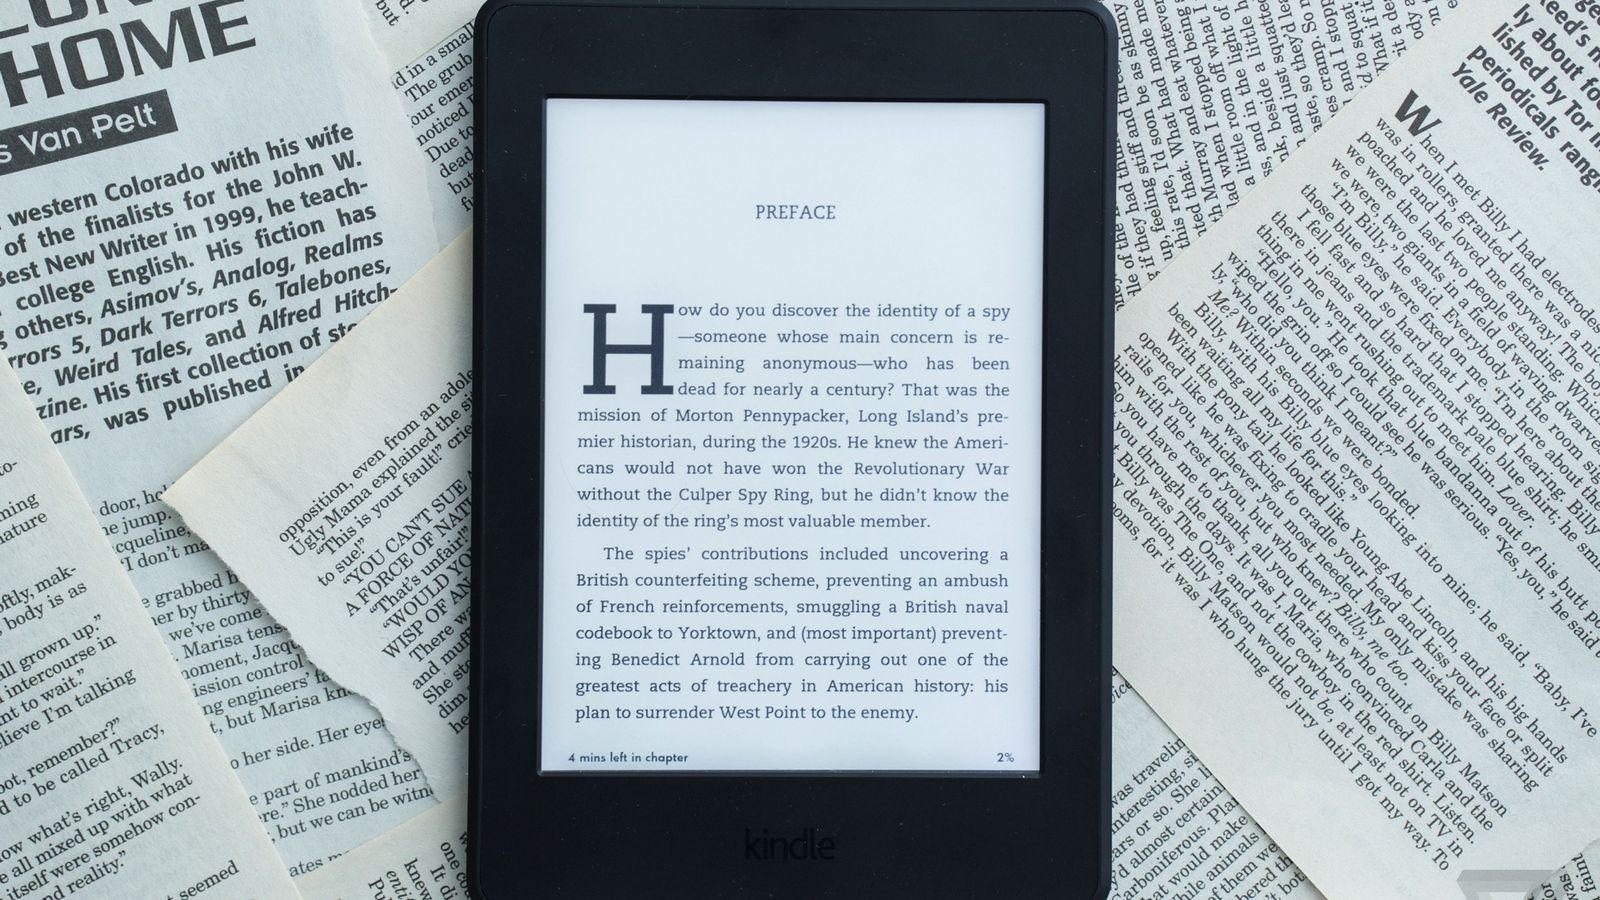 The Premium eReaders brought only for you!